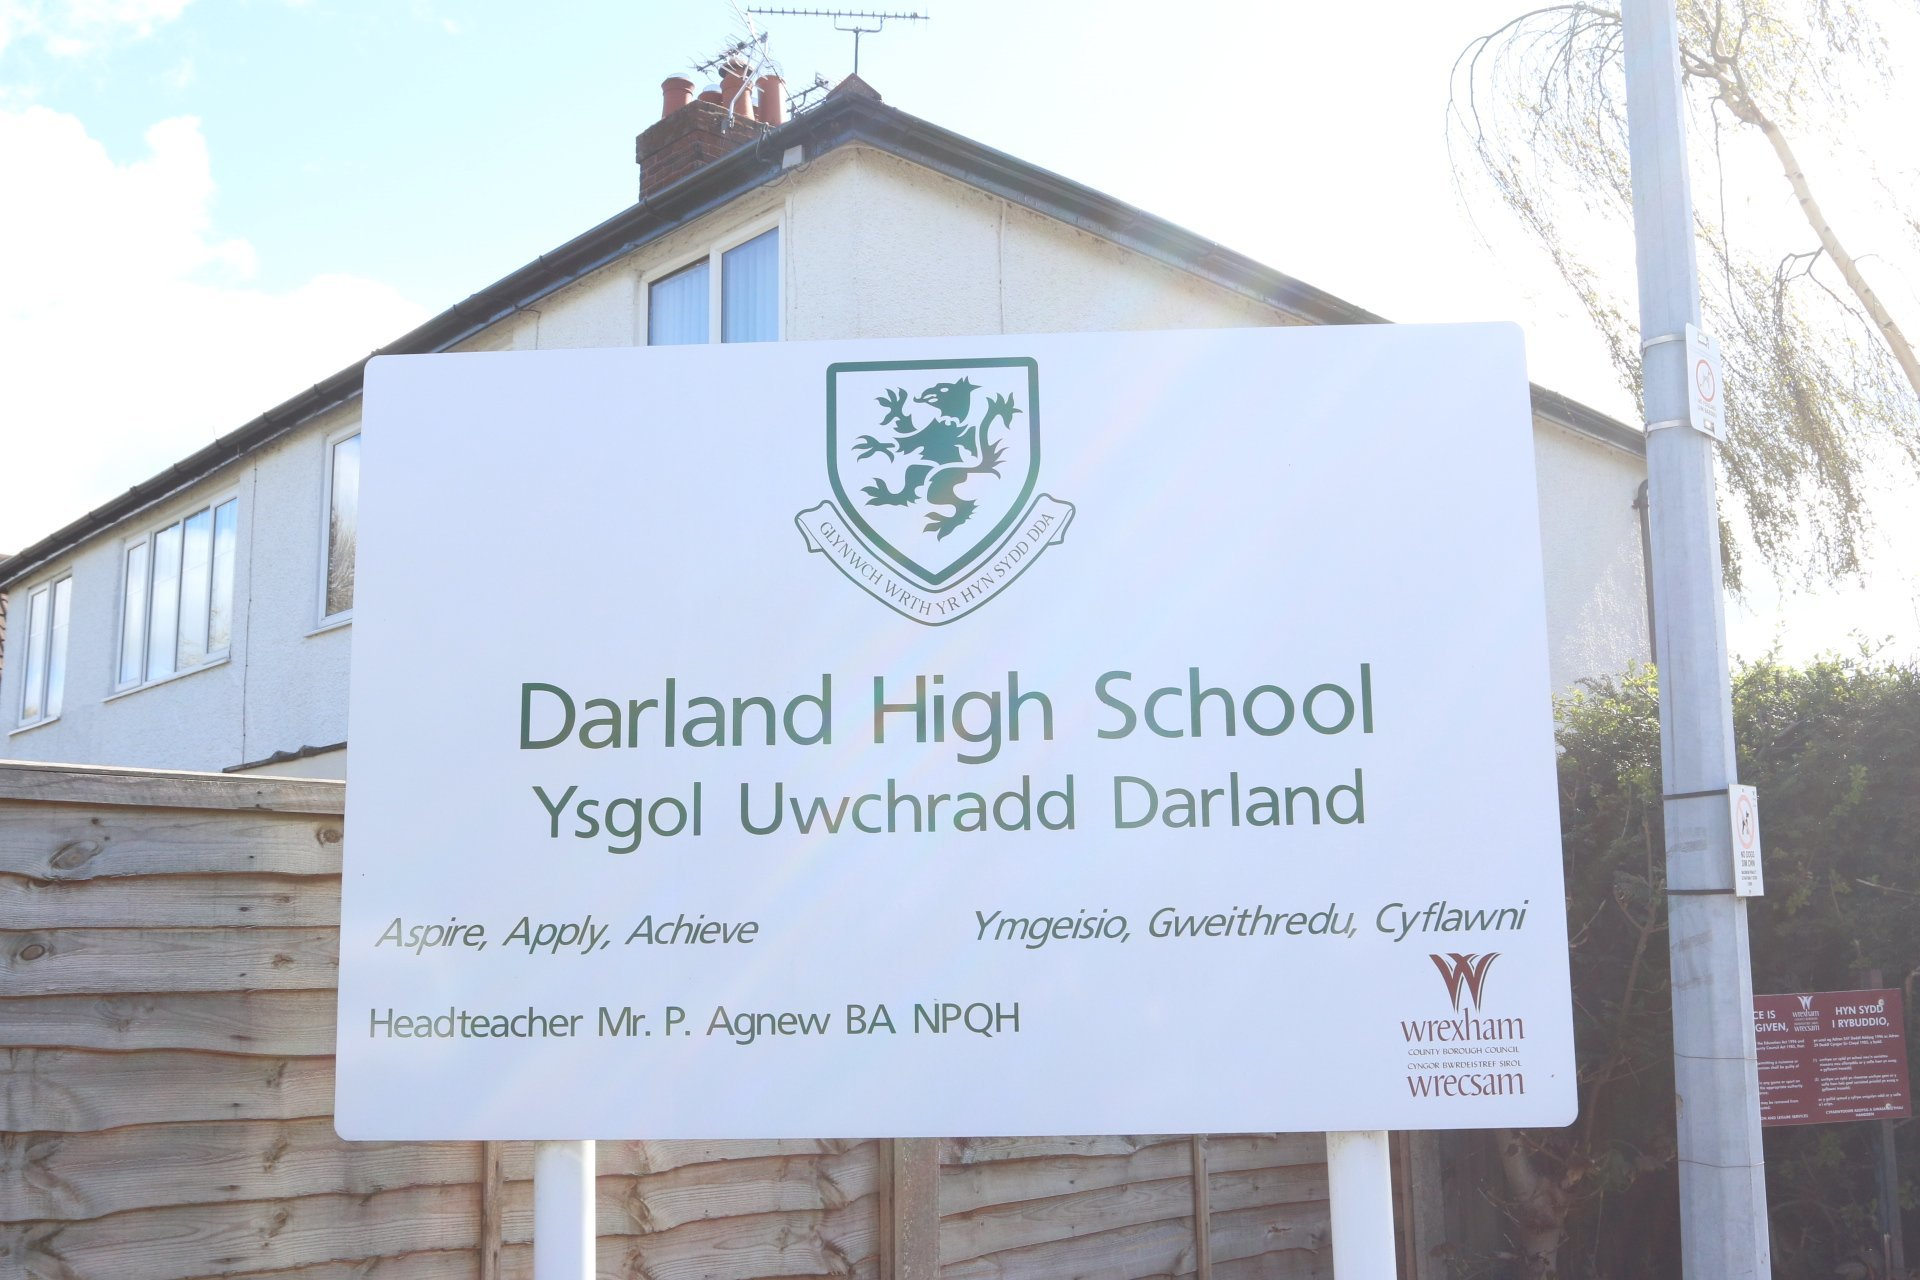 Darland High School sign